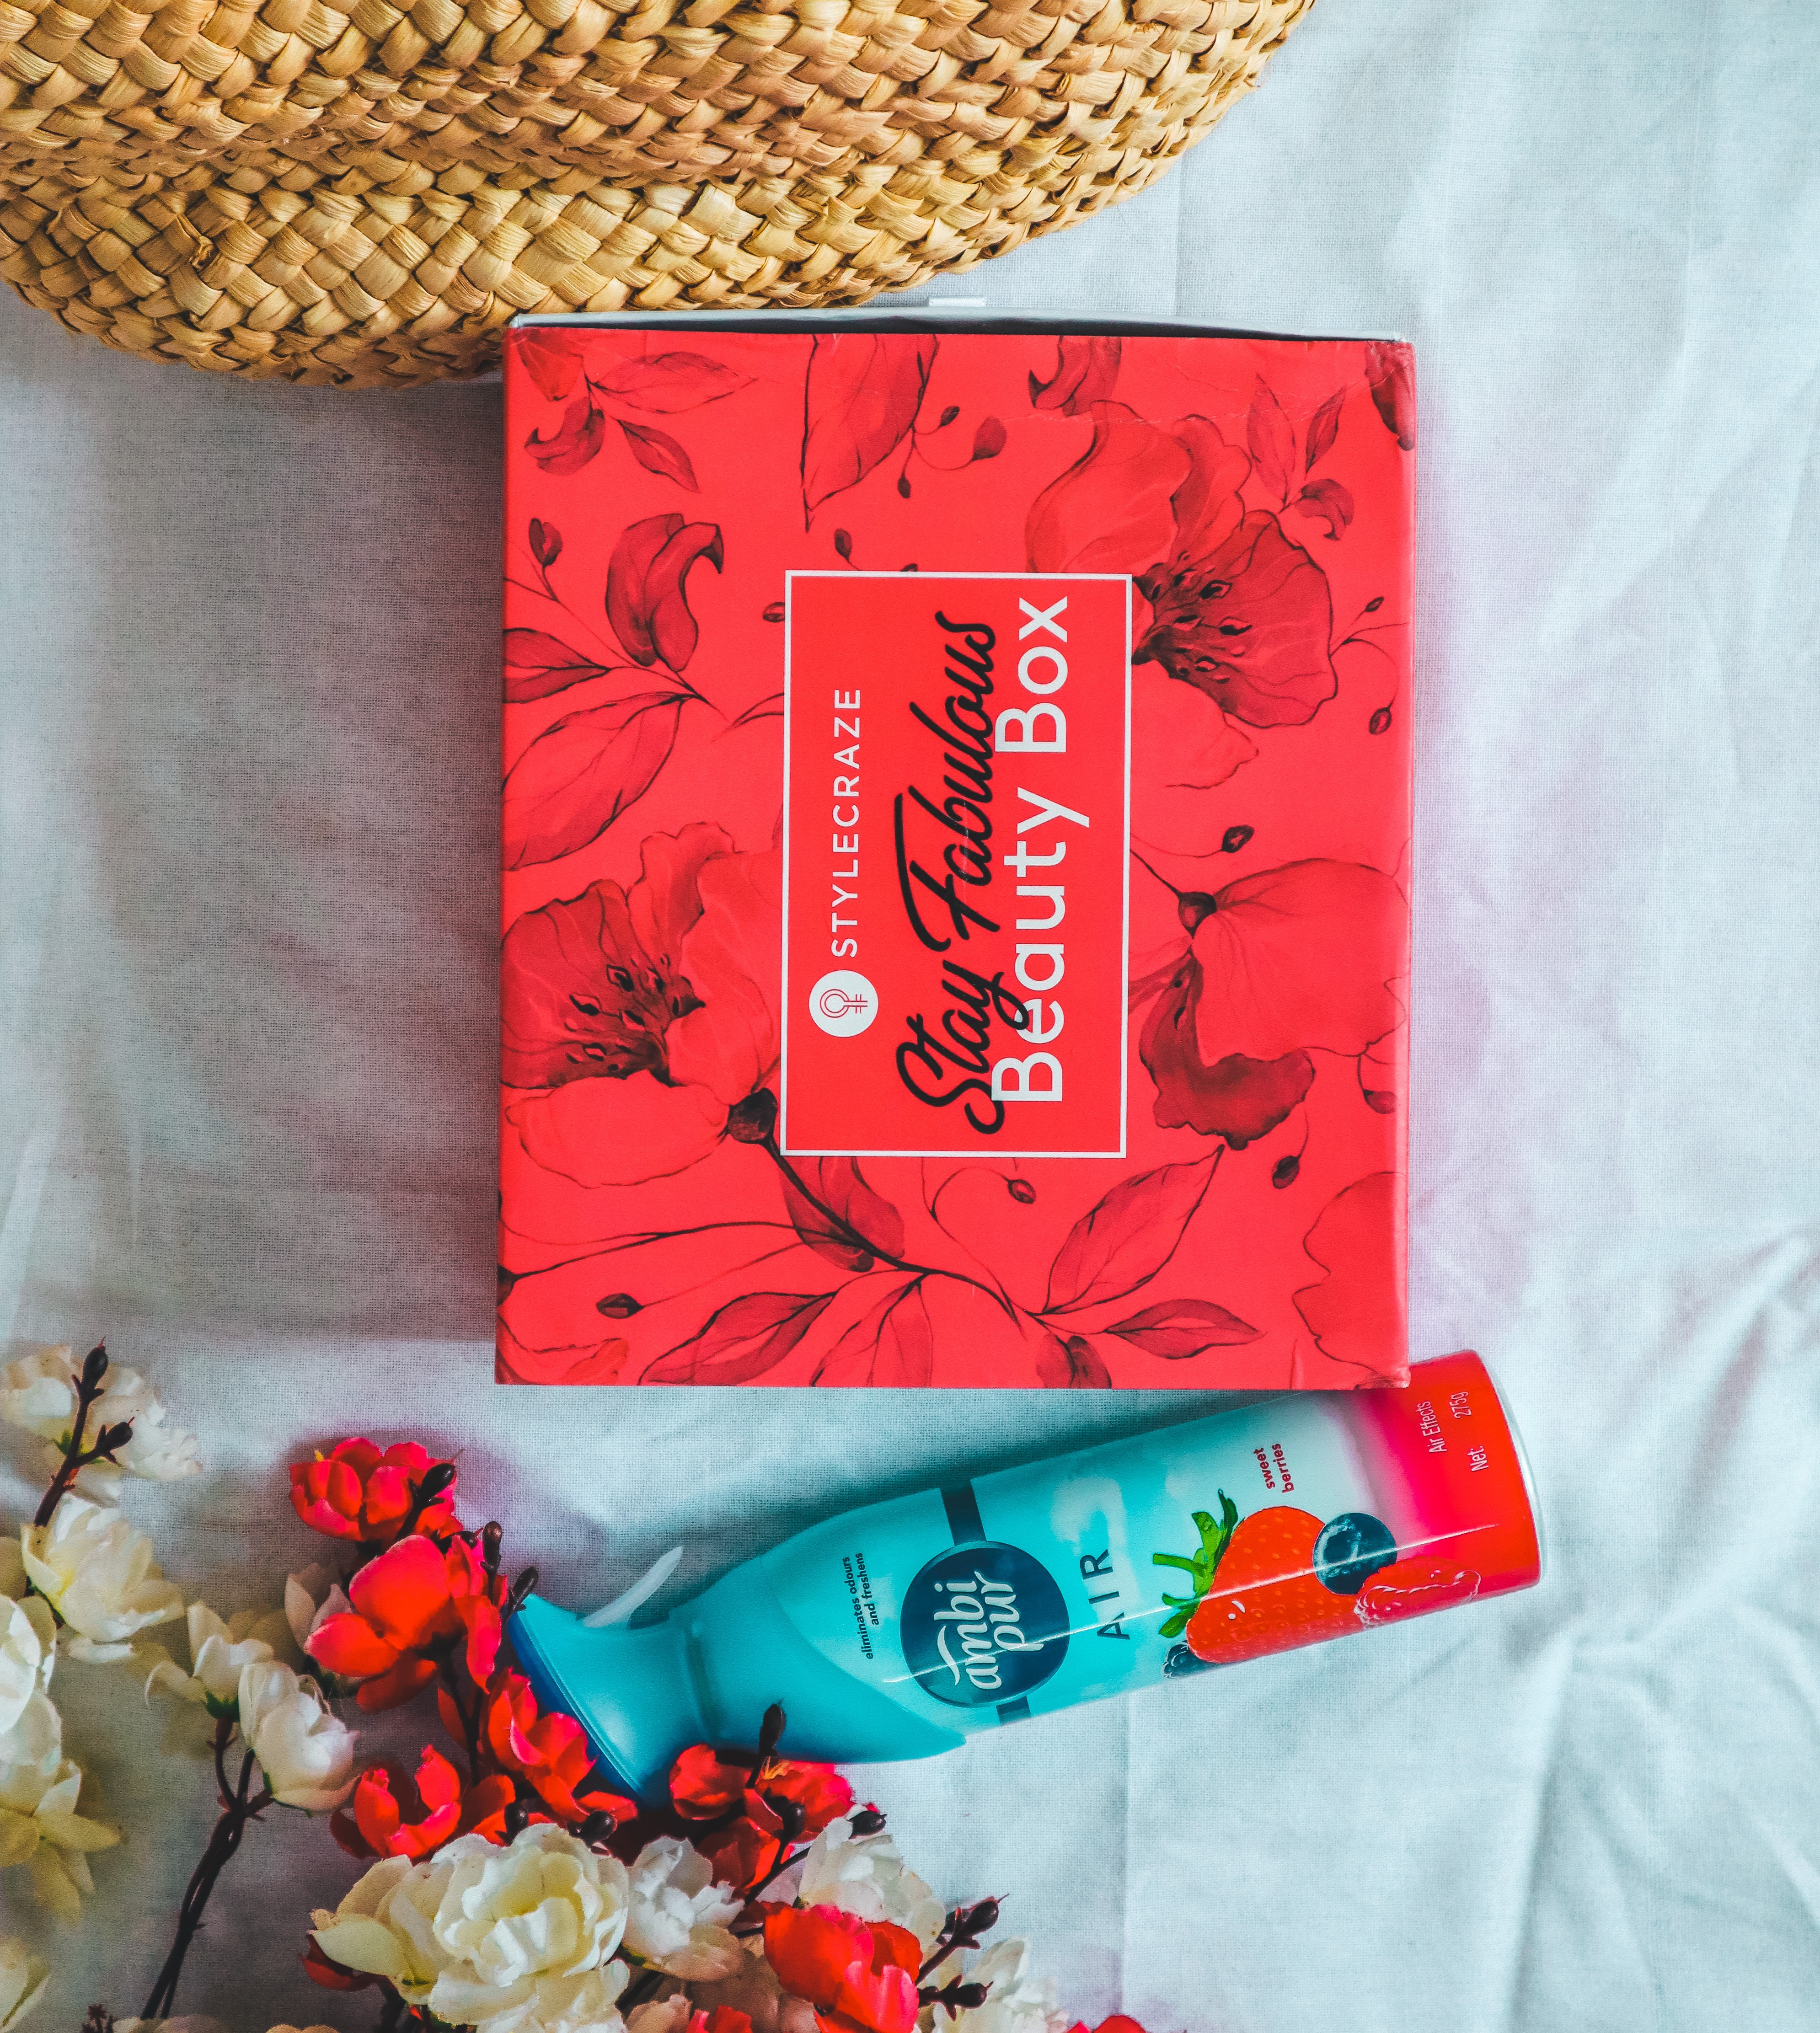 Ambi Pur Air Freshener – Sweet berries-Uplifts your mood instantly-By karry-2